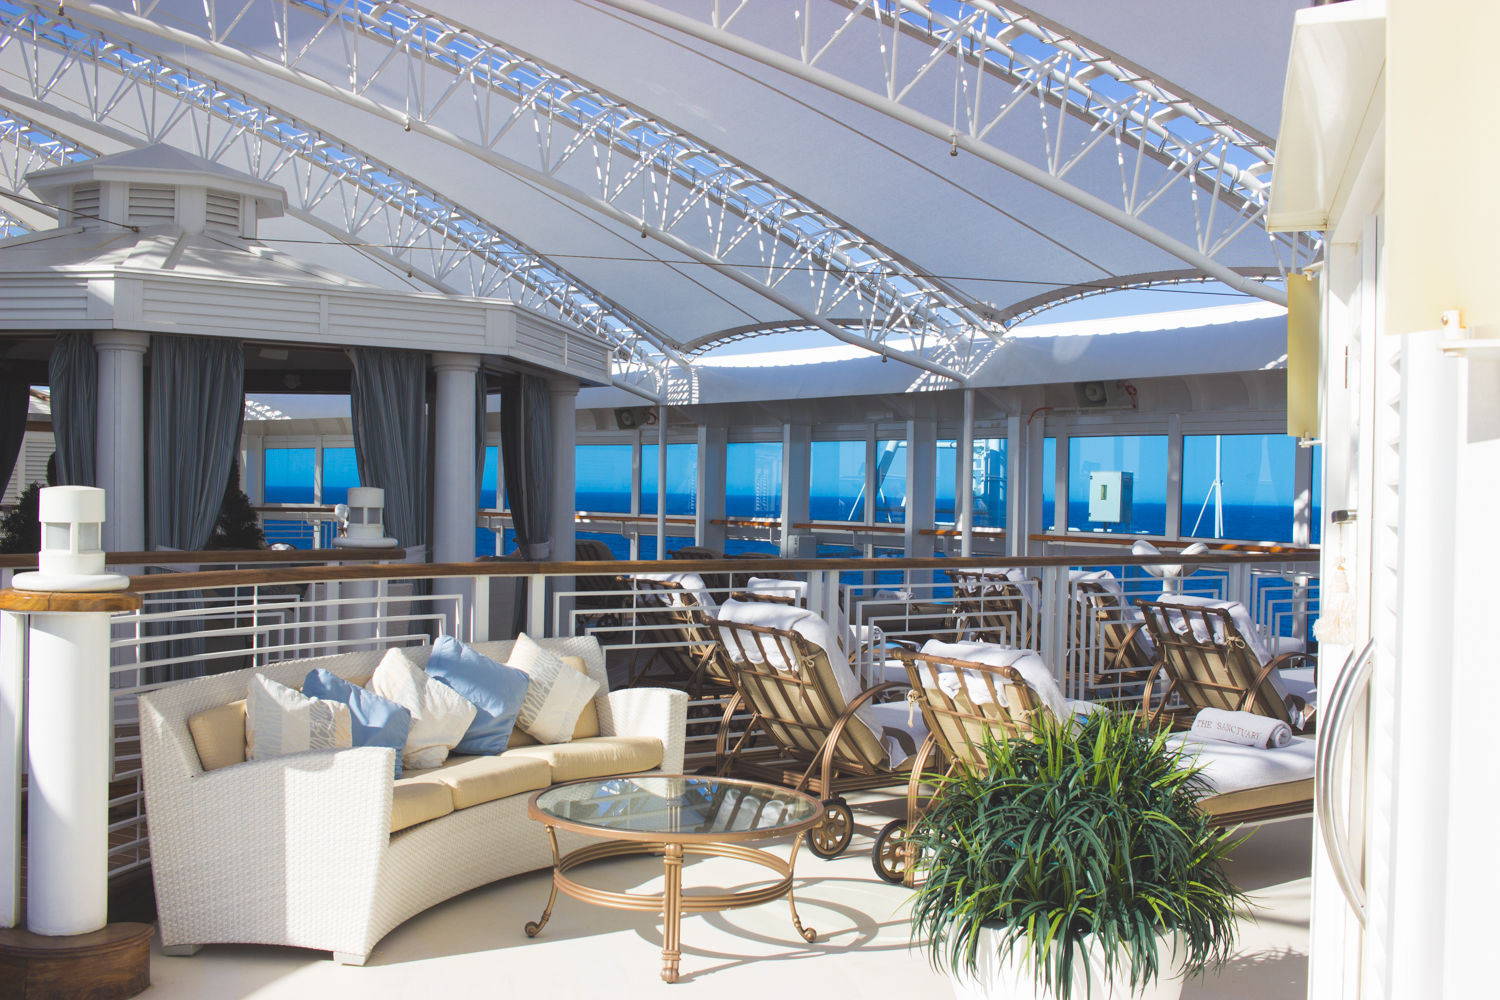 livvyland-blog-olivia-watson-princess-cruise-cabin-balcony-mediterranean-coast-royal-princess-ship-sanctuary-deck-luxury